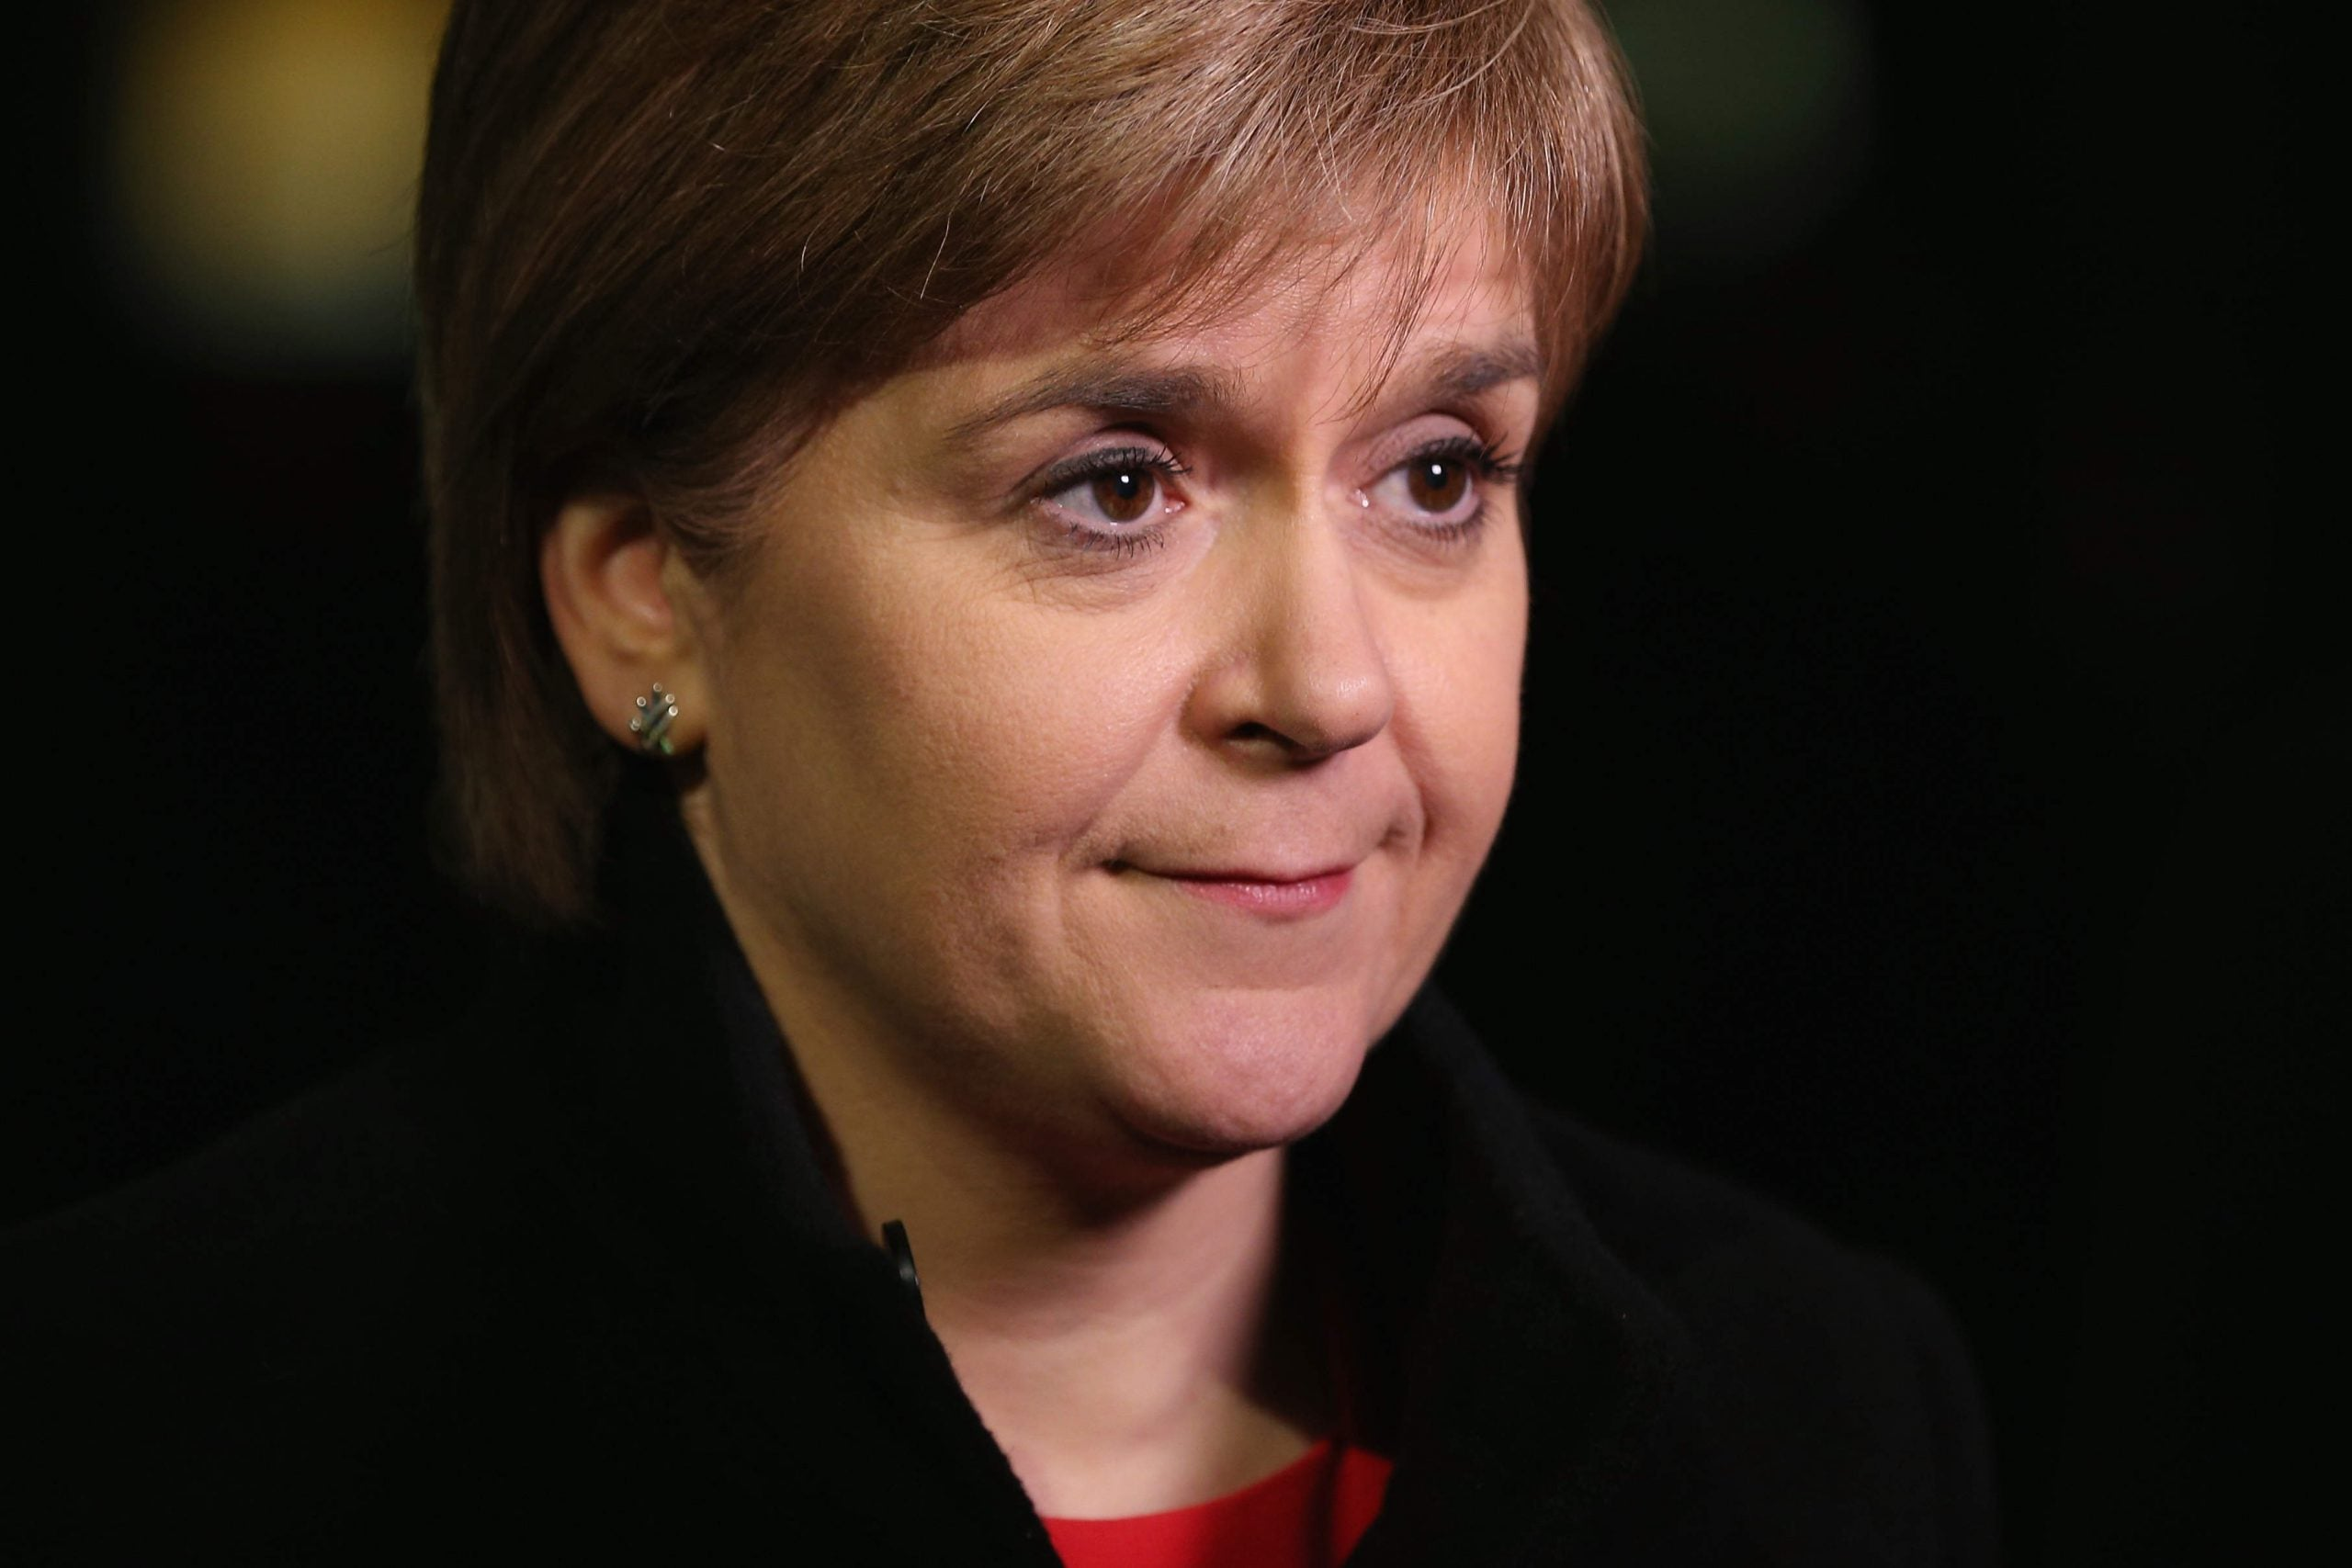 How a small tax rise exposed the SNP's anti-austerity talk for just that